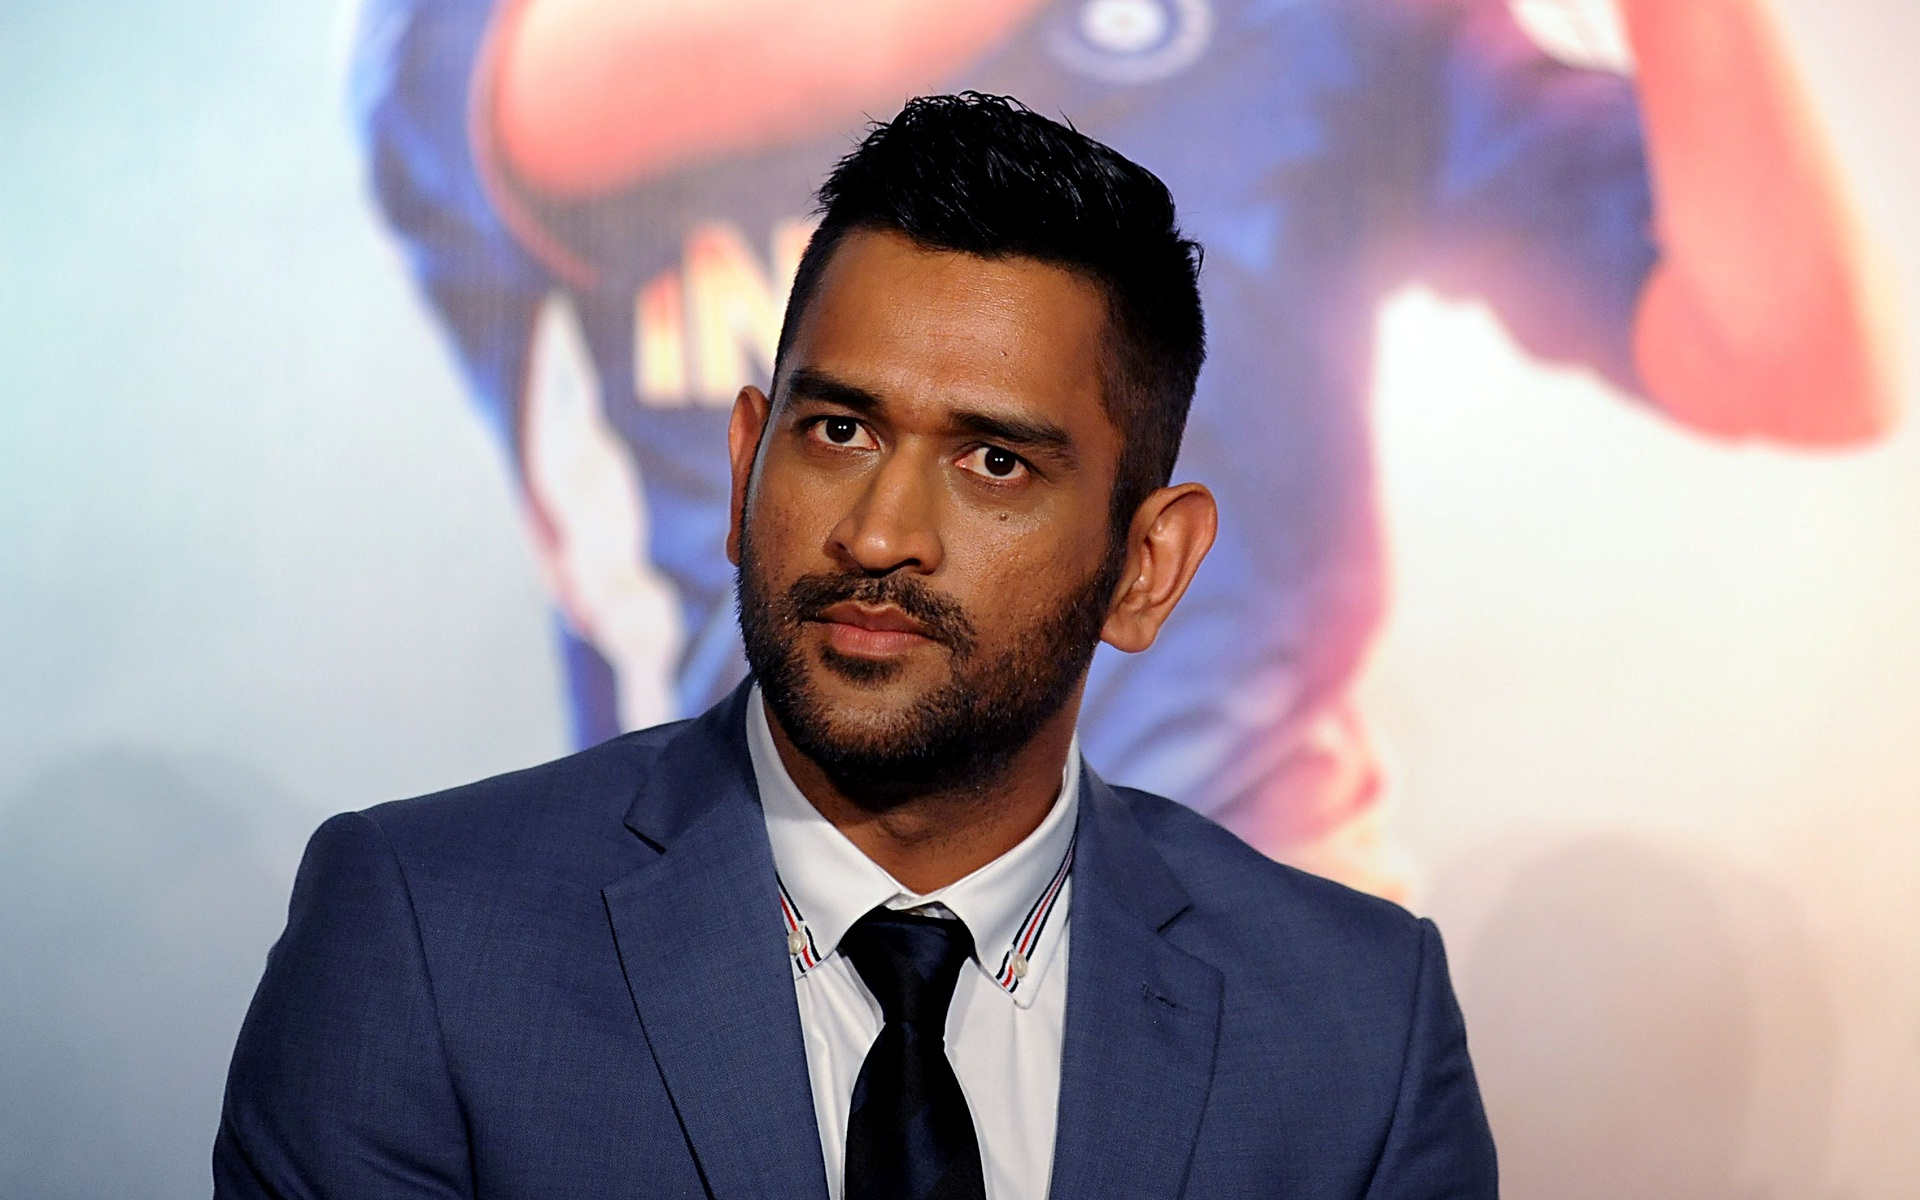 Dhoni Net Worth